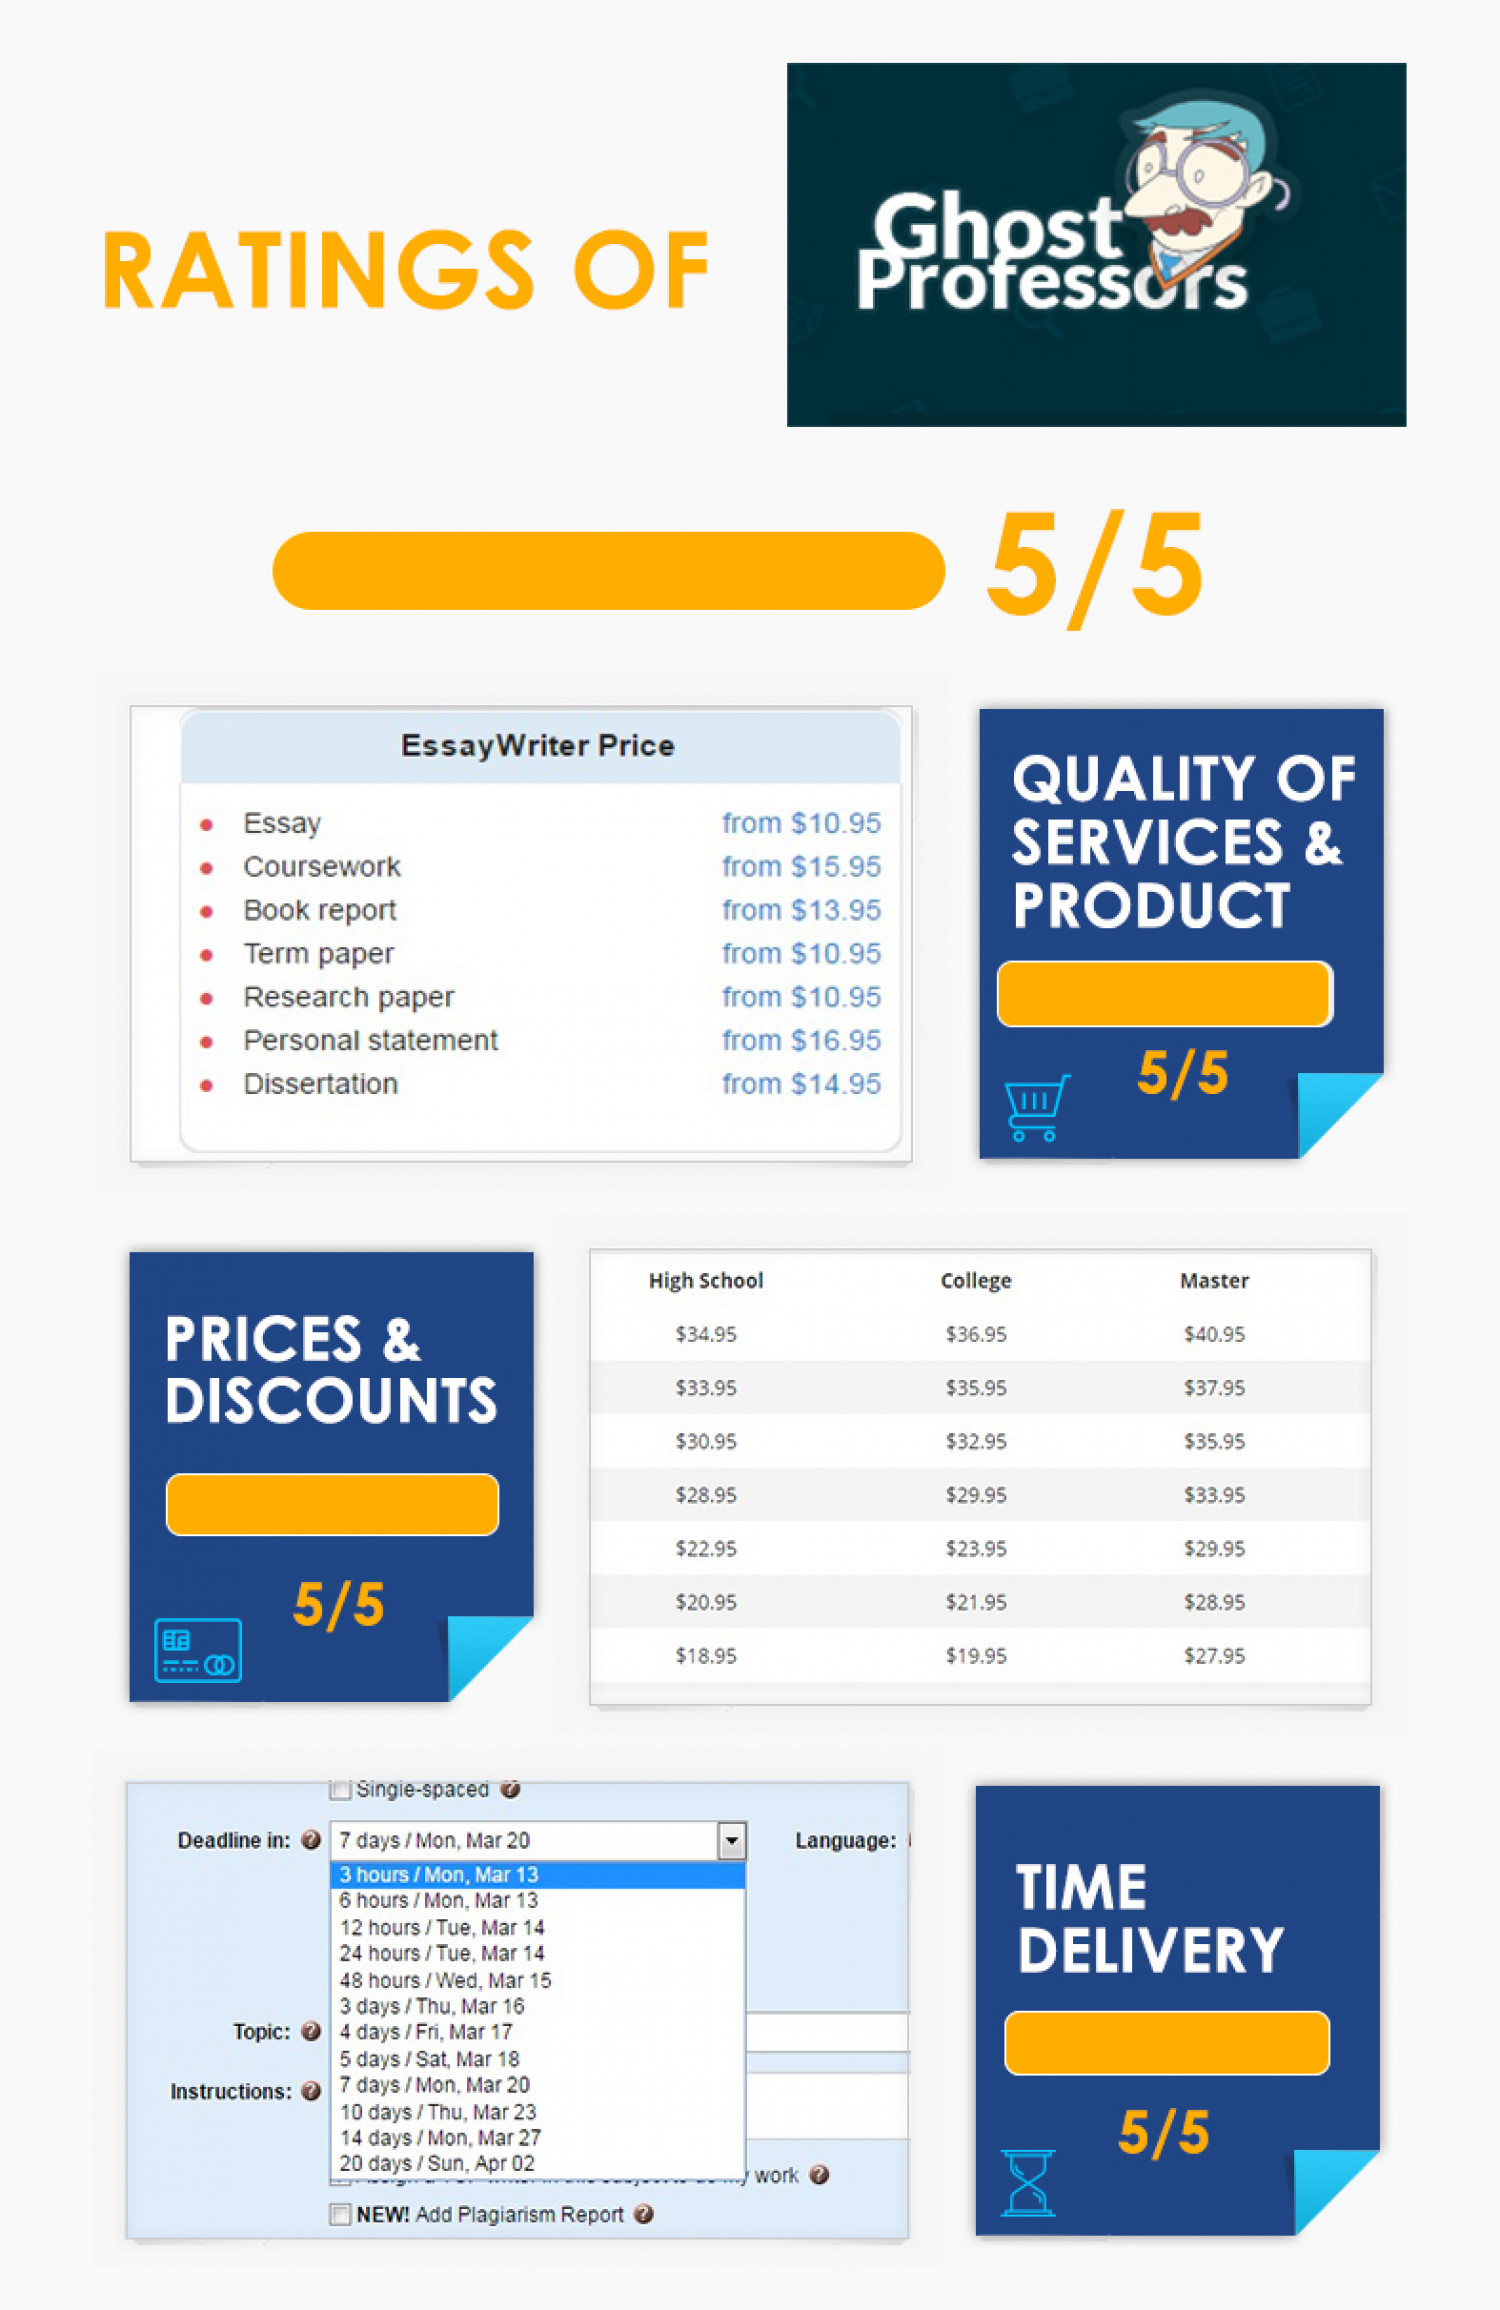 We Have GhostProfessors Writing Service Rating And Advise You To Check It Too Infographic